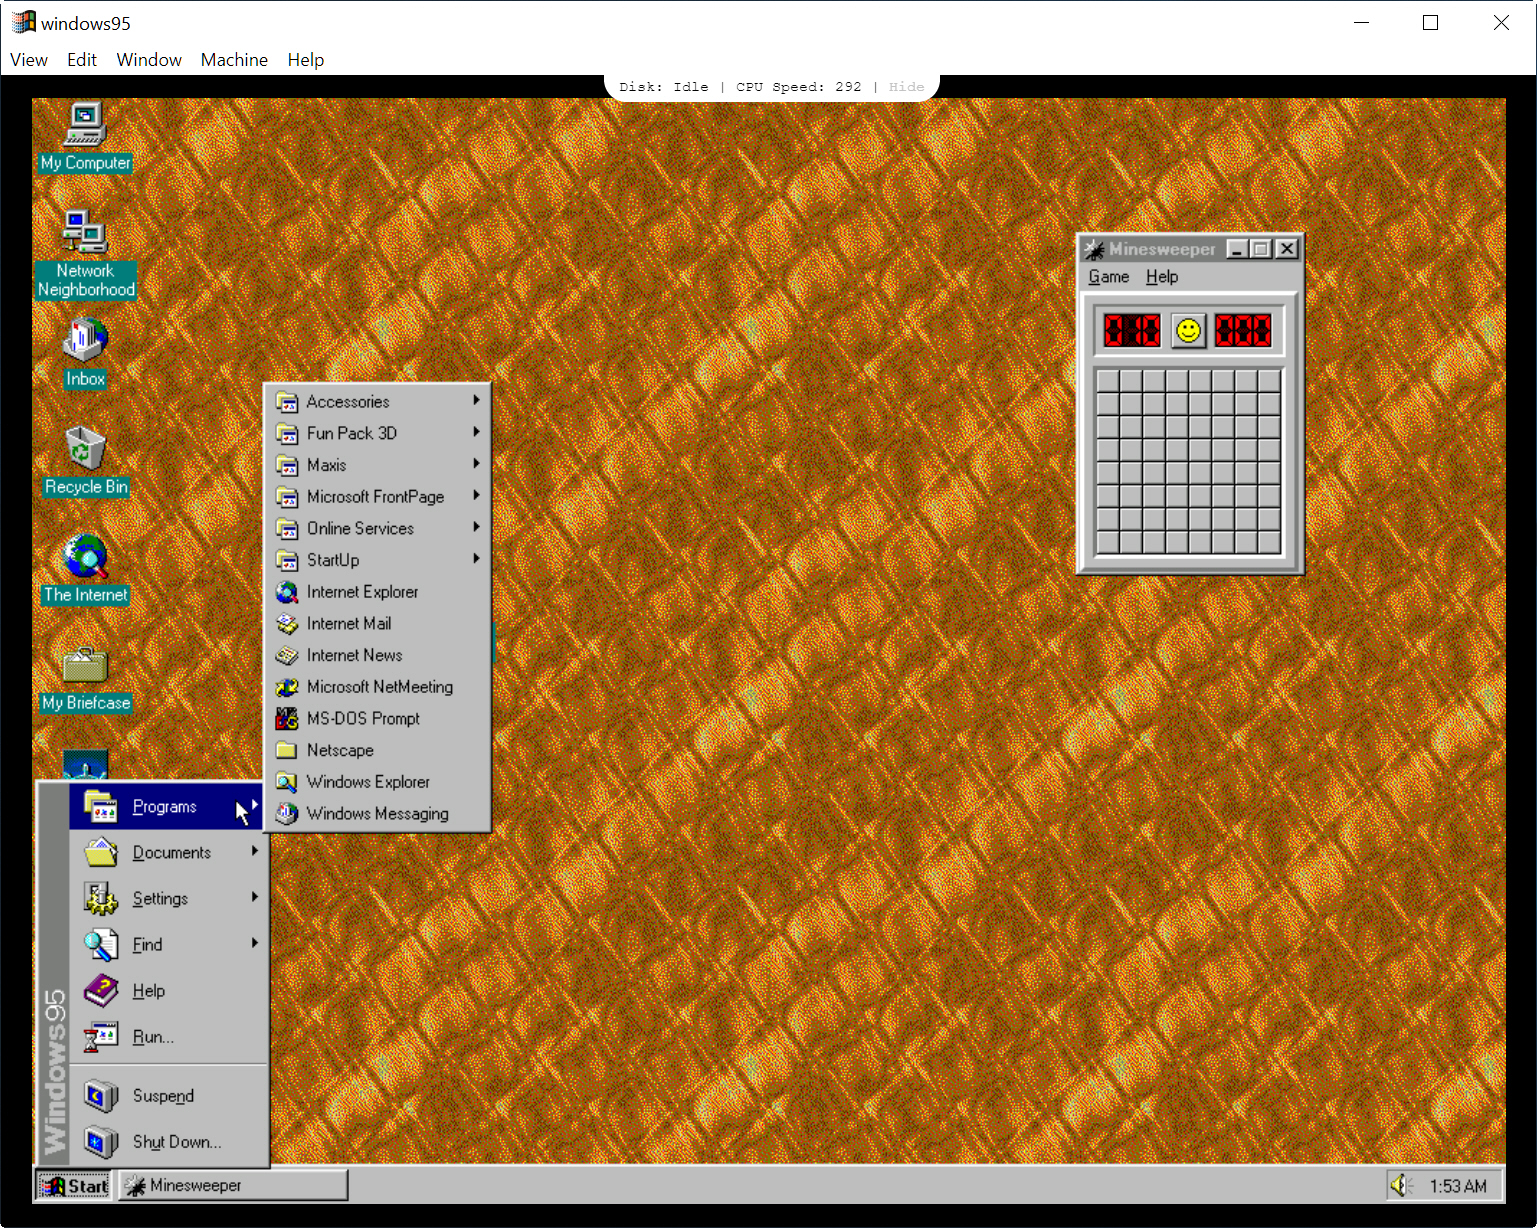 New version of Windows 95 gains a snazzy user interface on